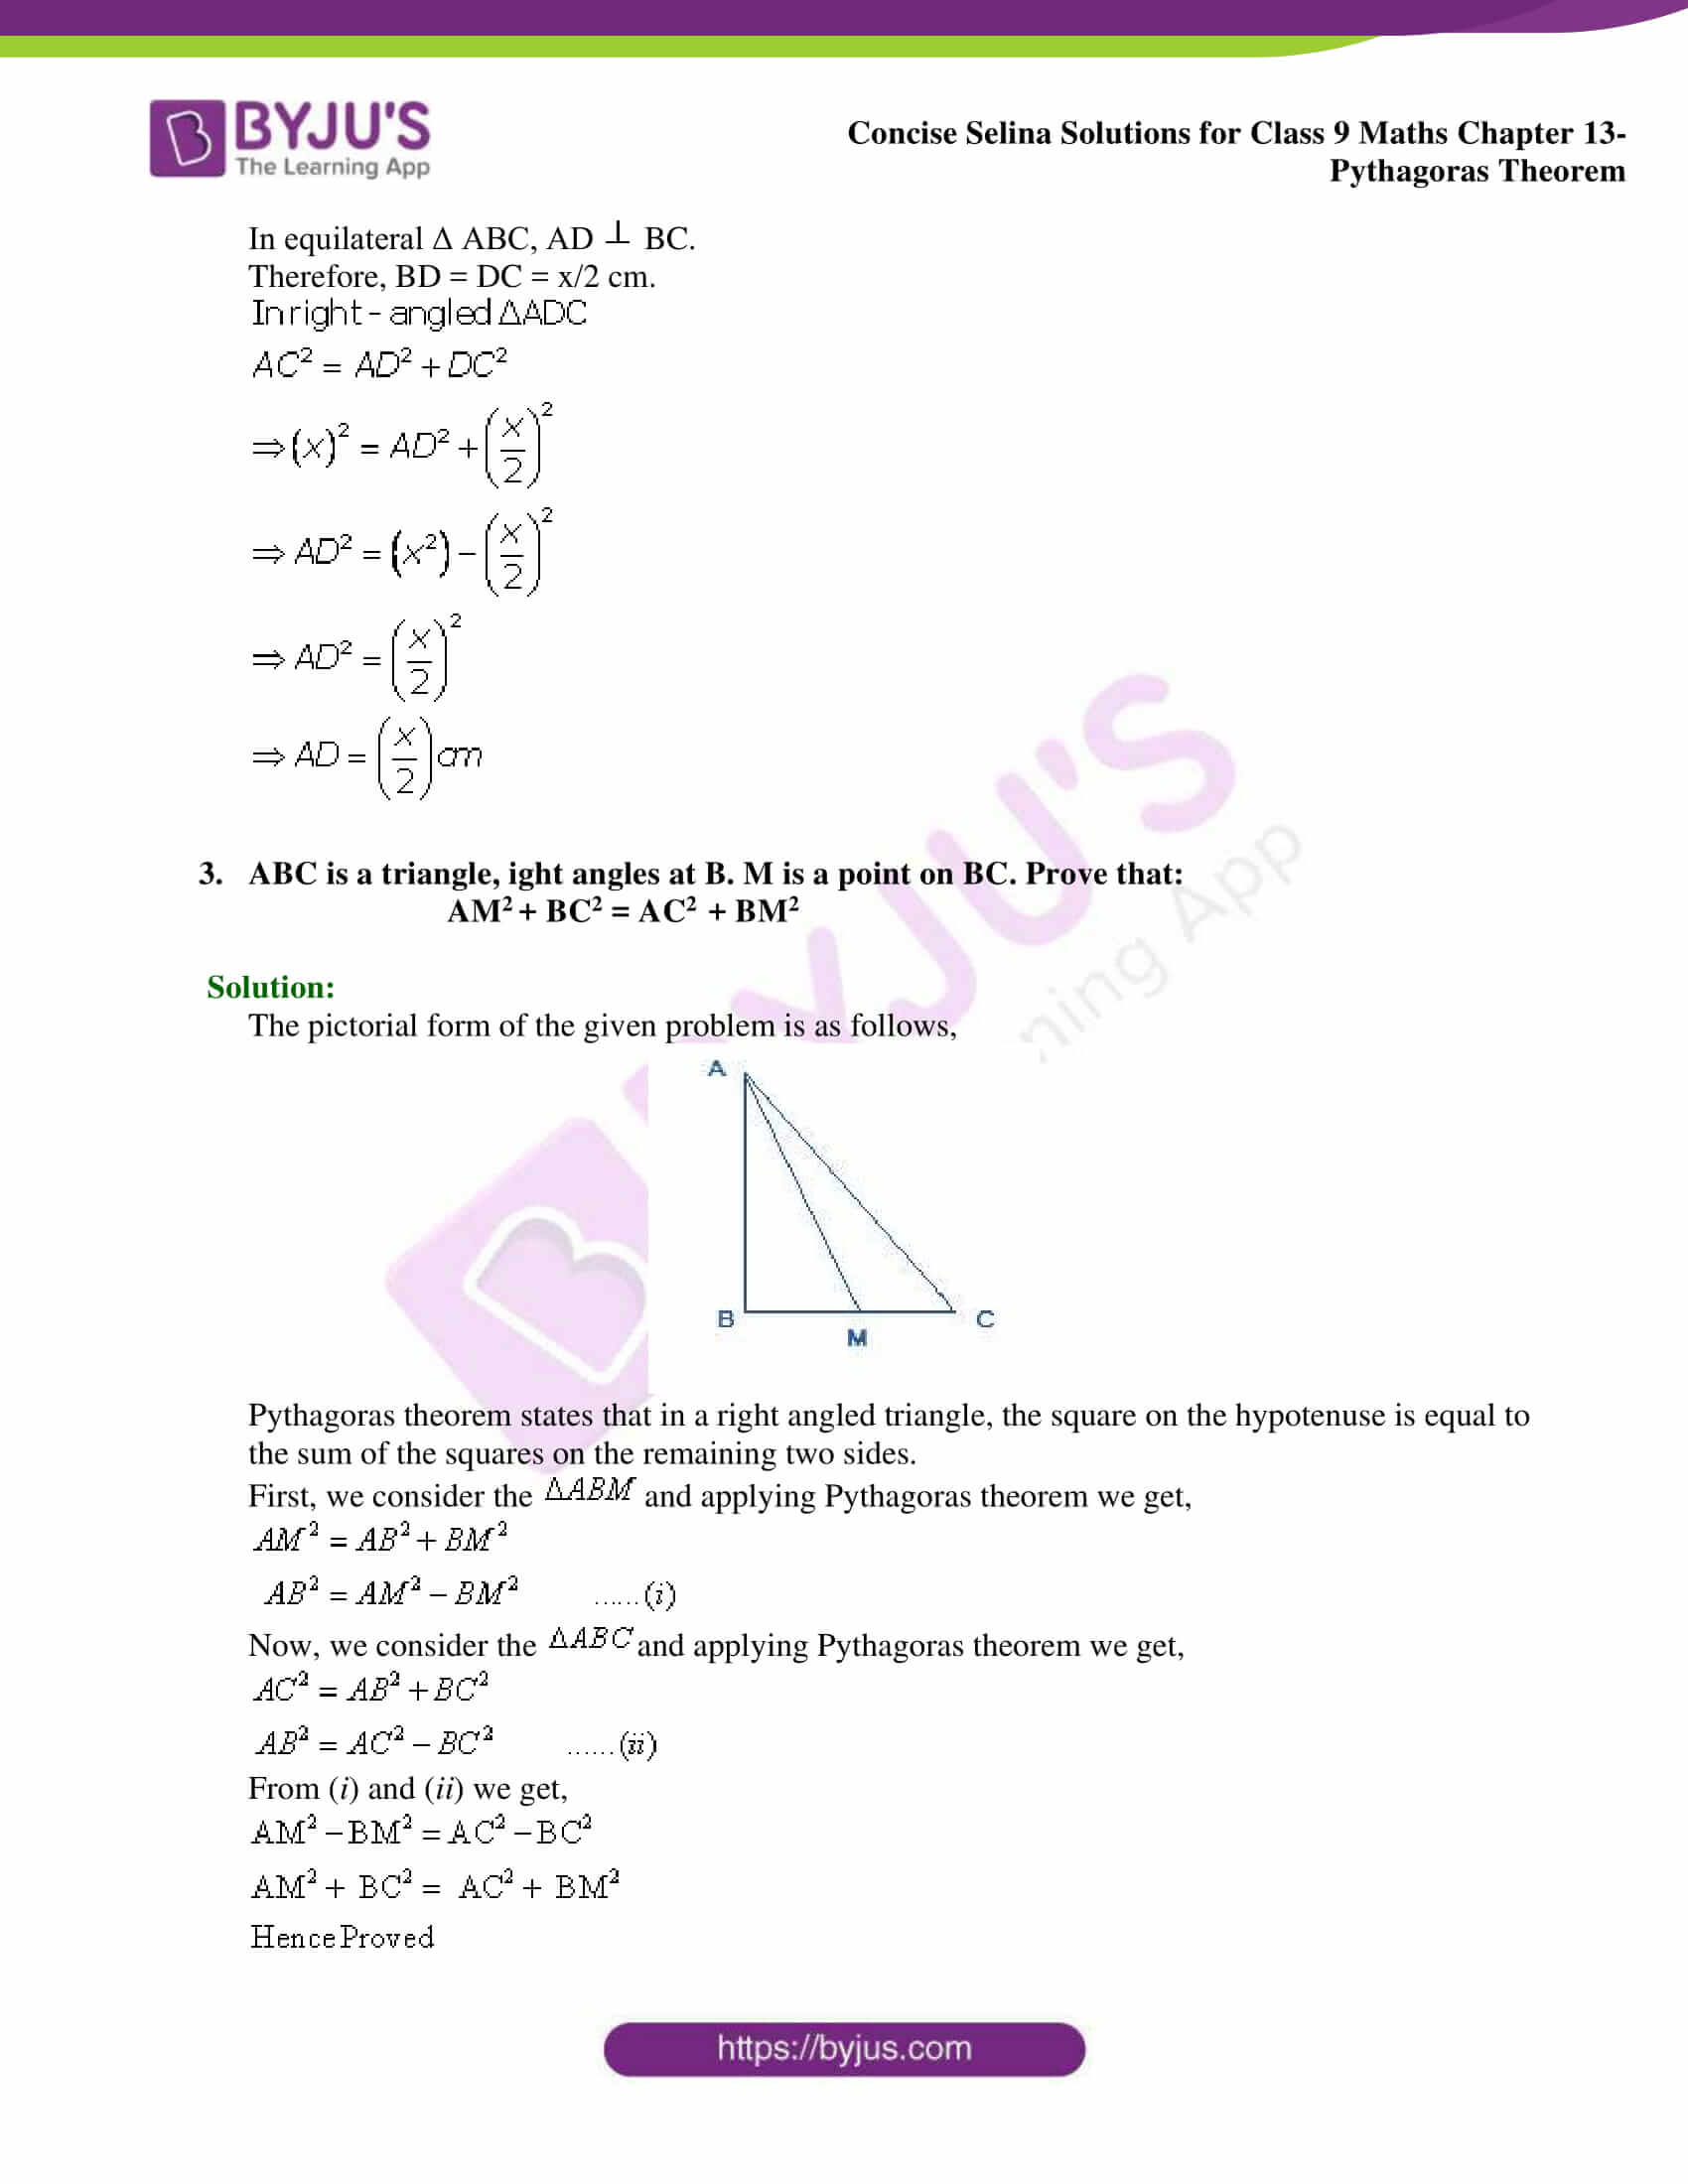 selina Solutions for Class 9 Maths Chapter 13 part 11